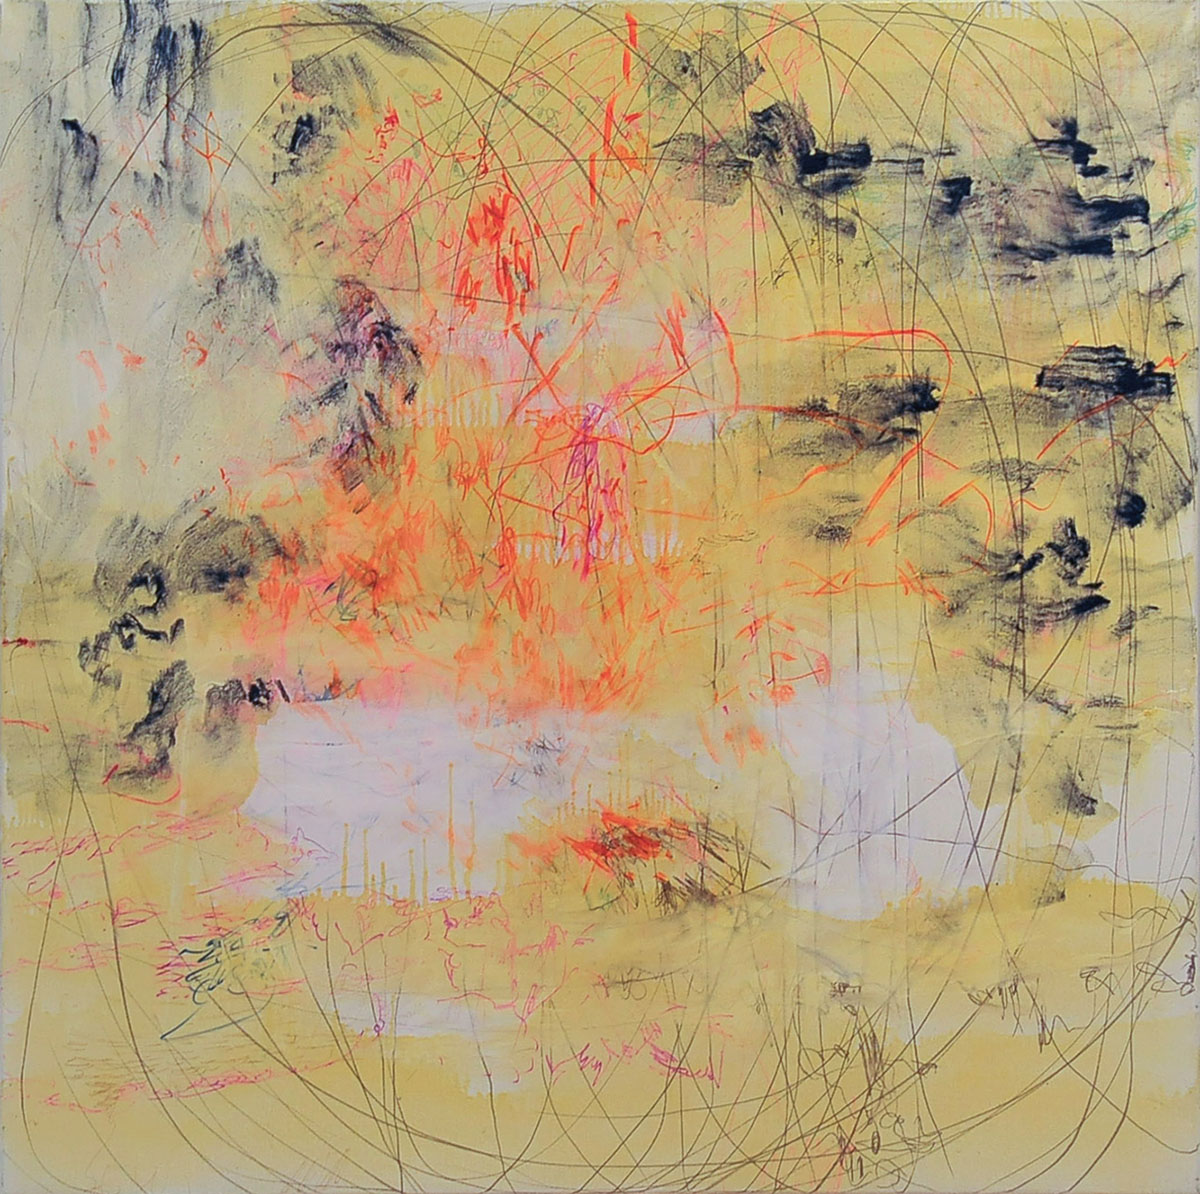 6 Andreea Albani - Untitled (Time # 0.2 series) (# 4) oil, printing ink, coal, marker on canvas, 2014